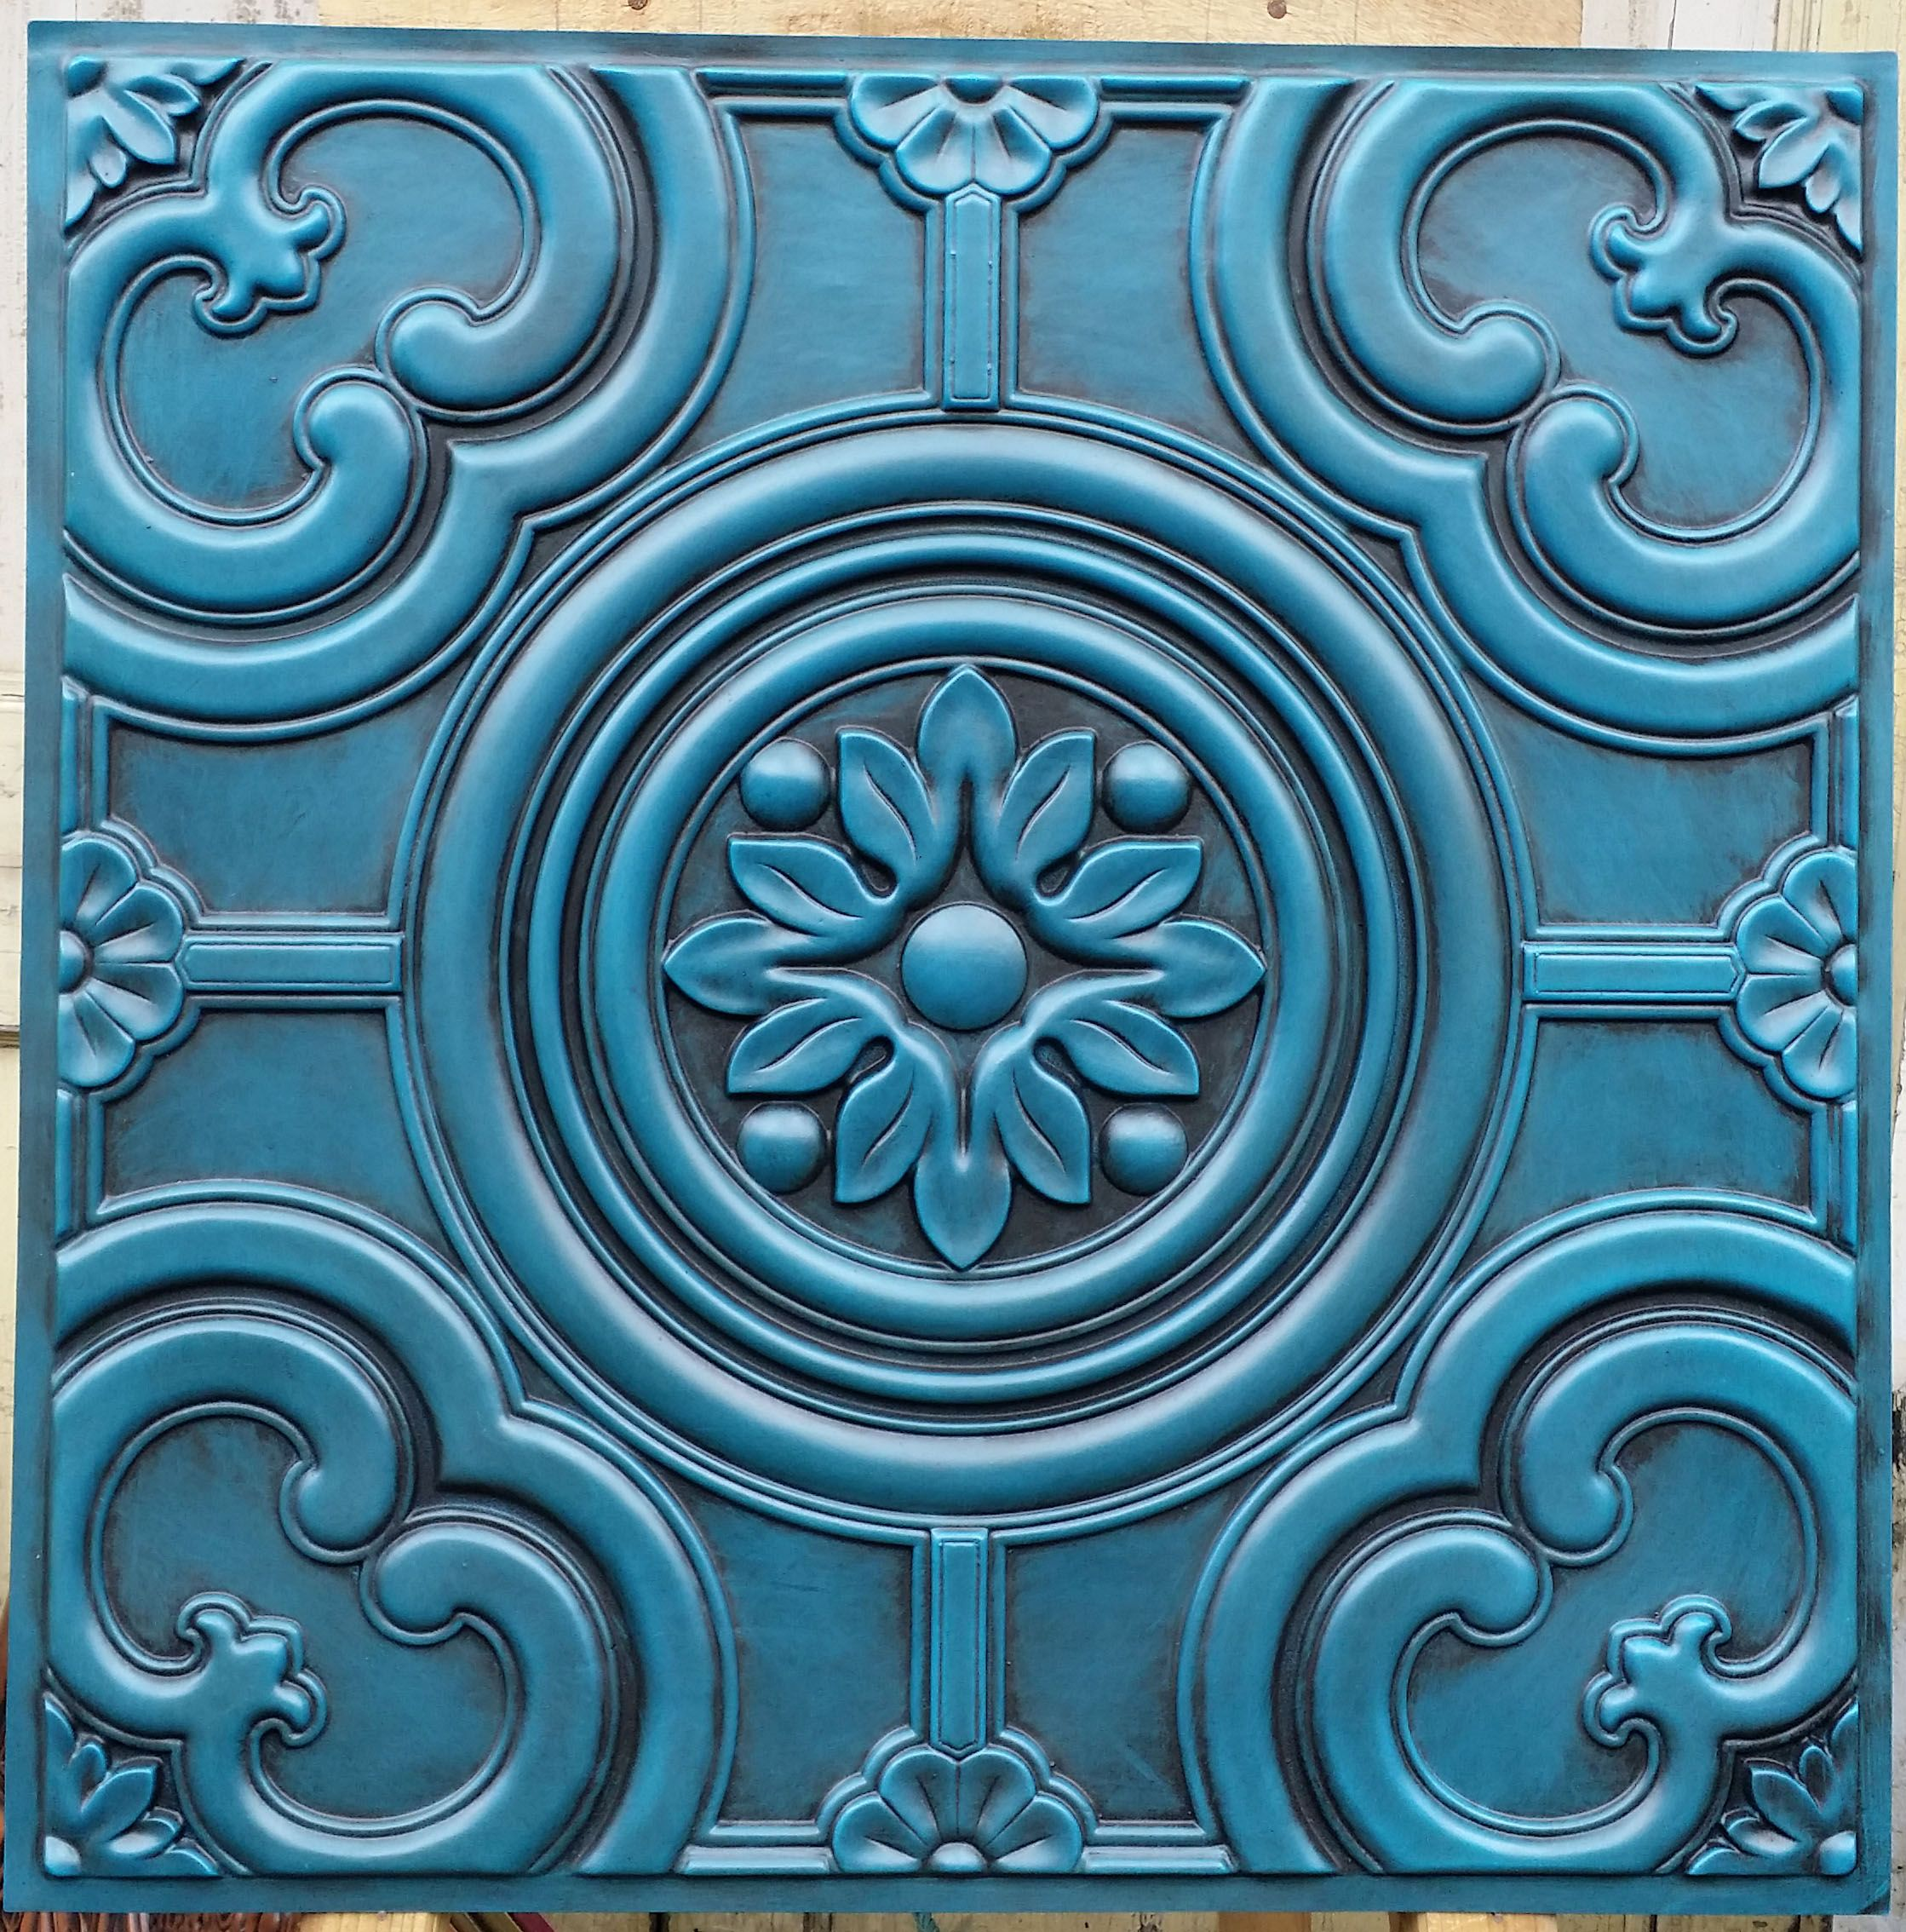 Pin by Crisdiagra on Teselas / Azulejos | Pinterest | Ceiling tiles ...